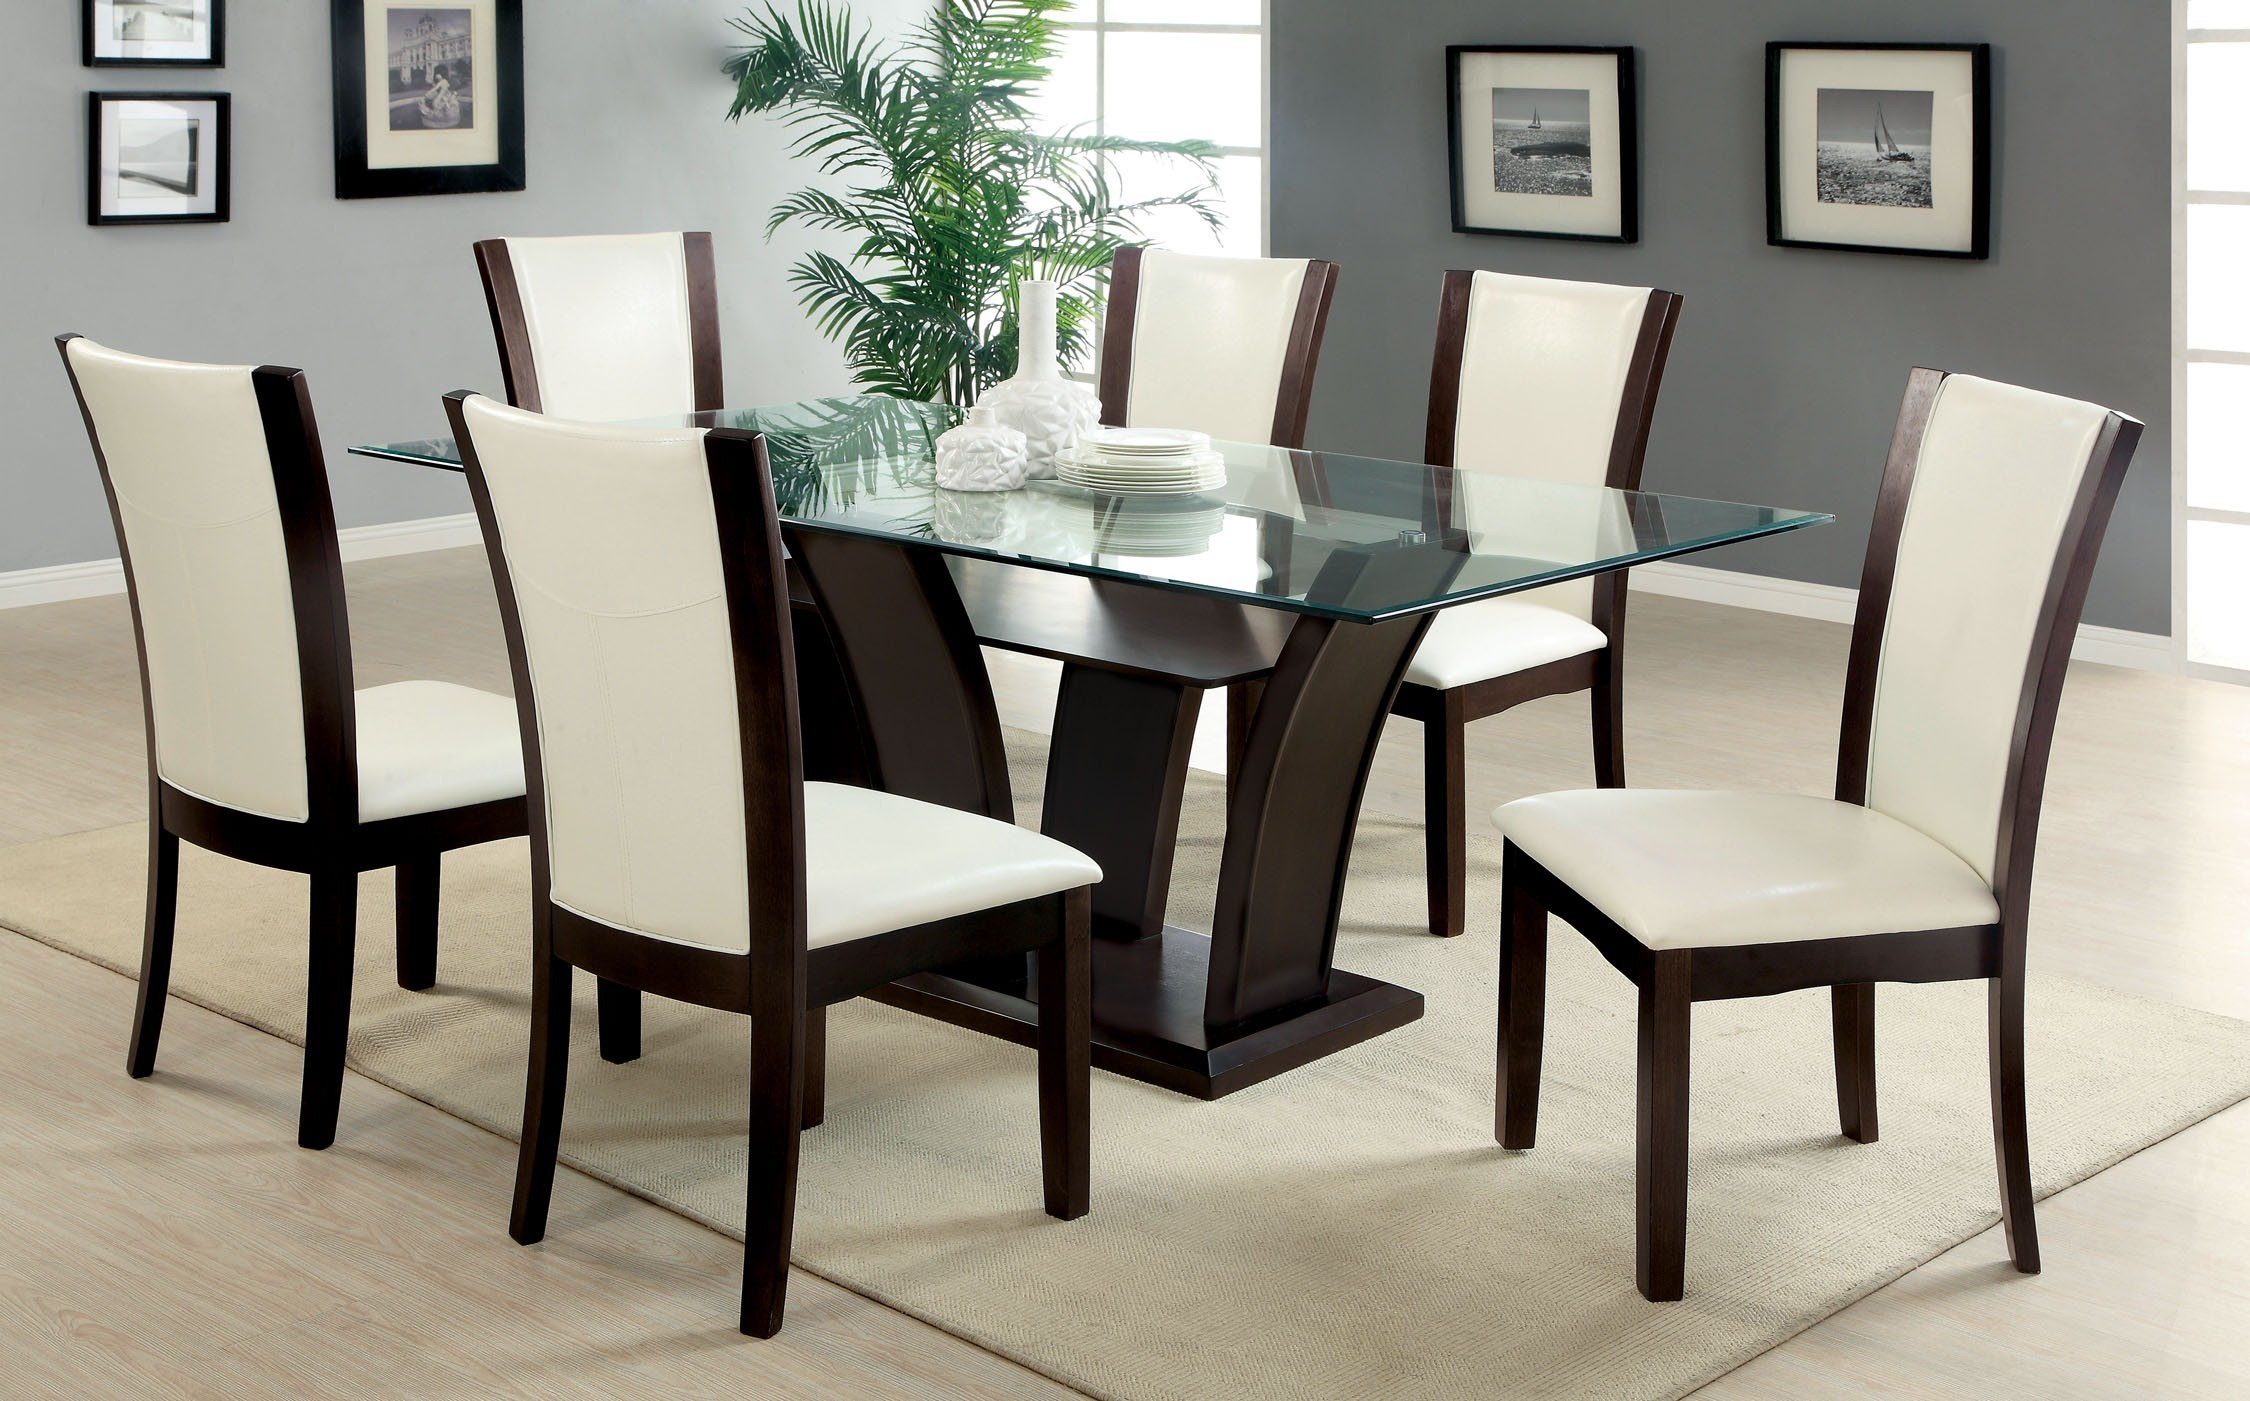 Kmart Dining Table Sets